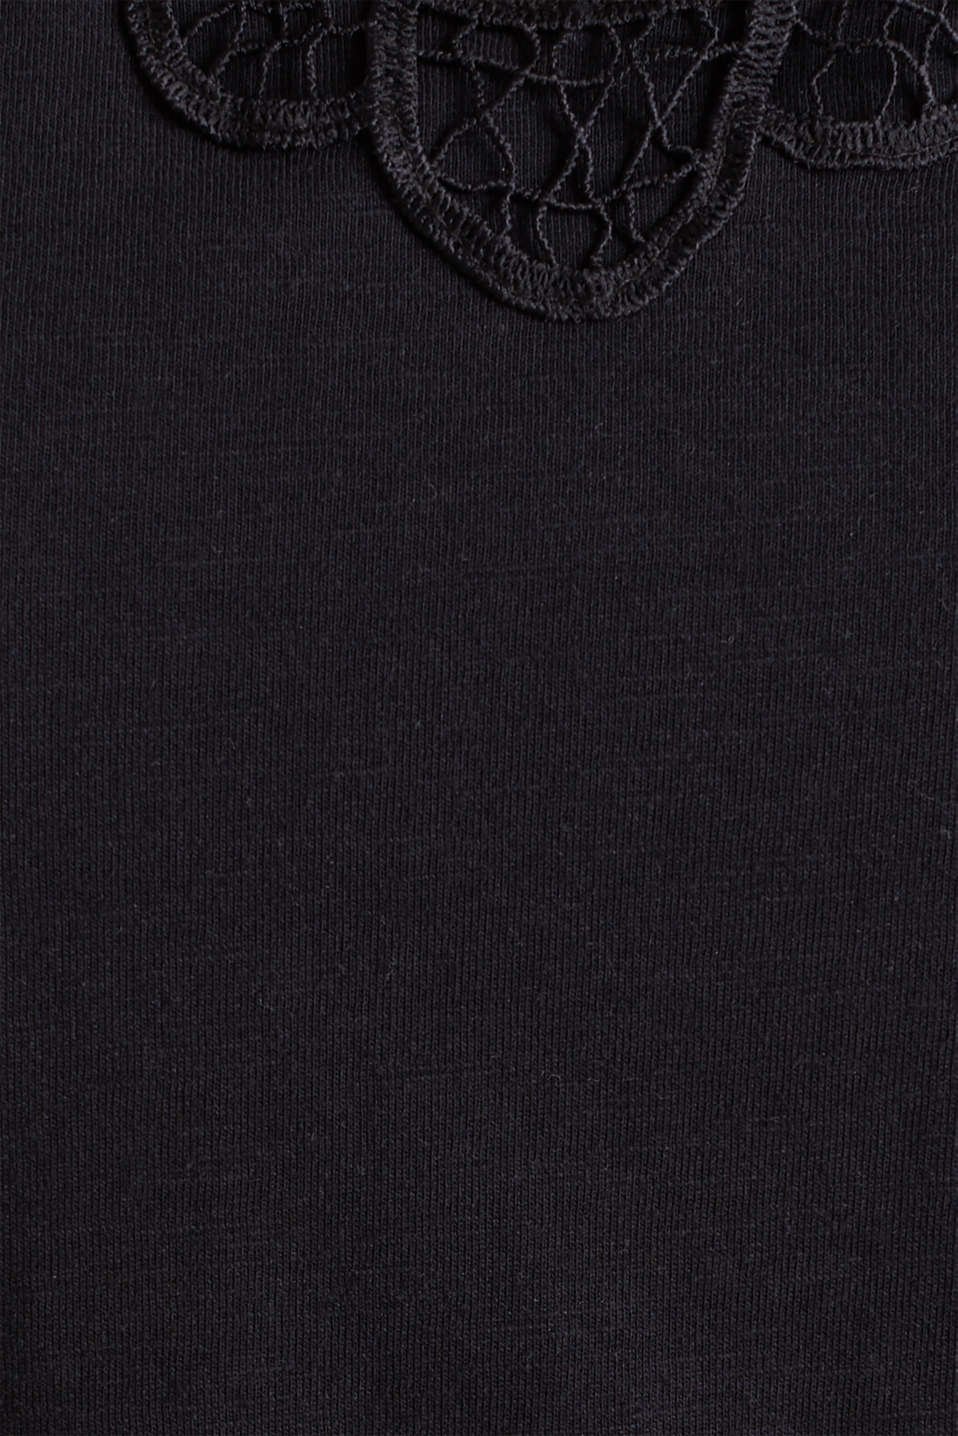 Cotton top with a lace insert, BLACK, detail image number 4